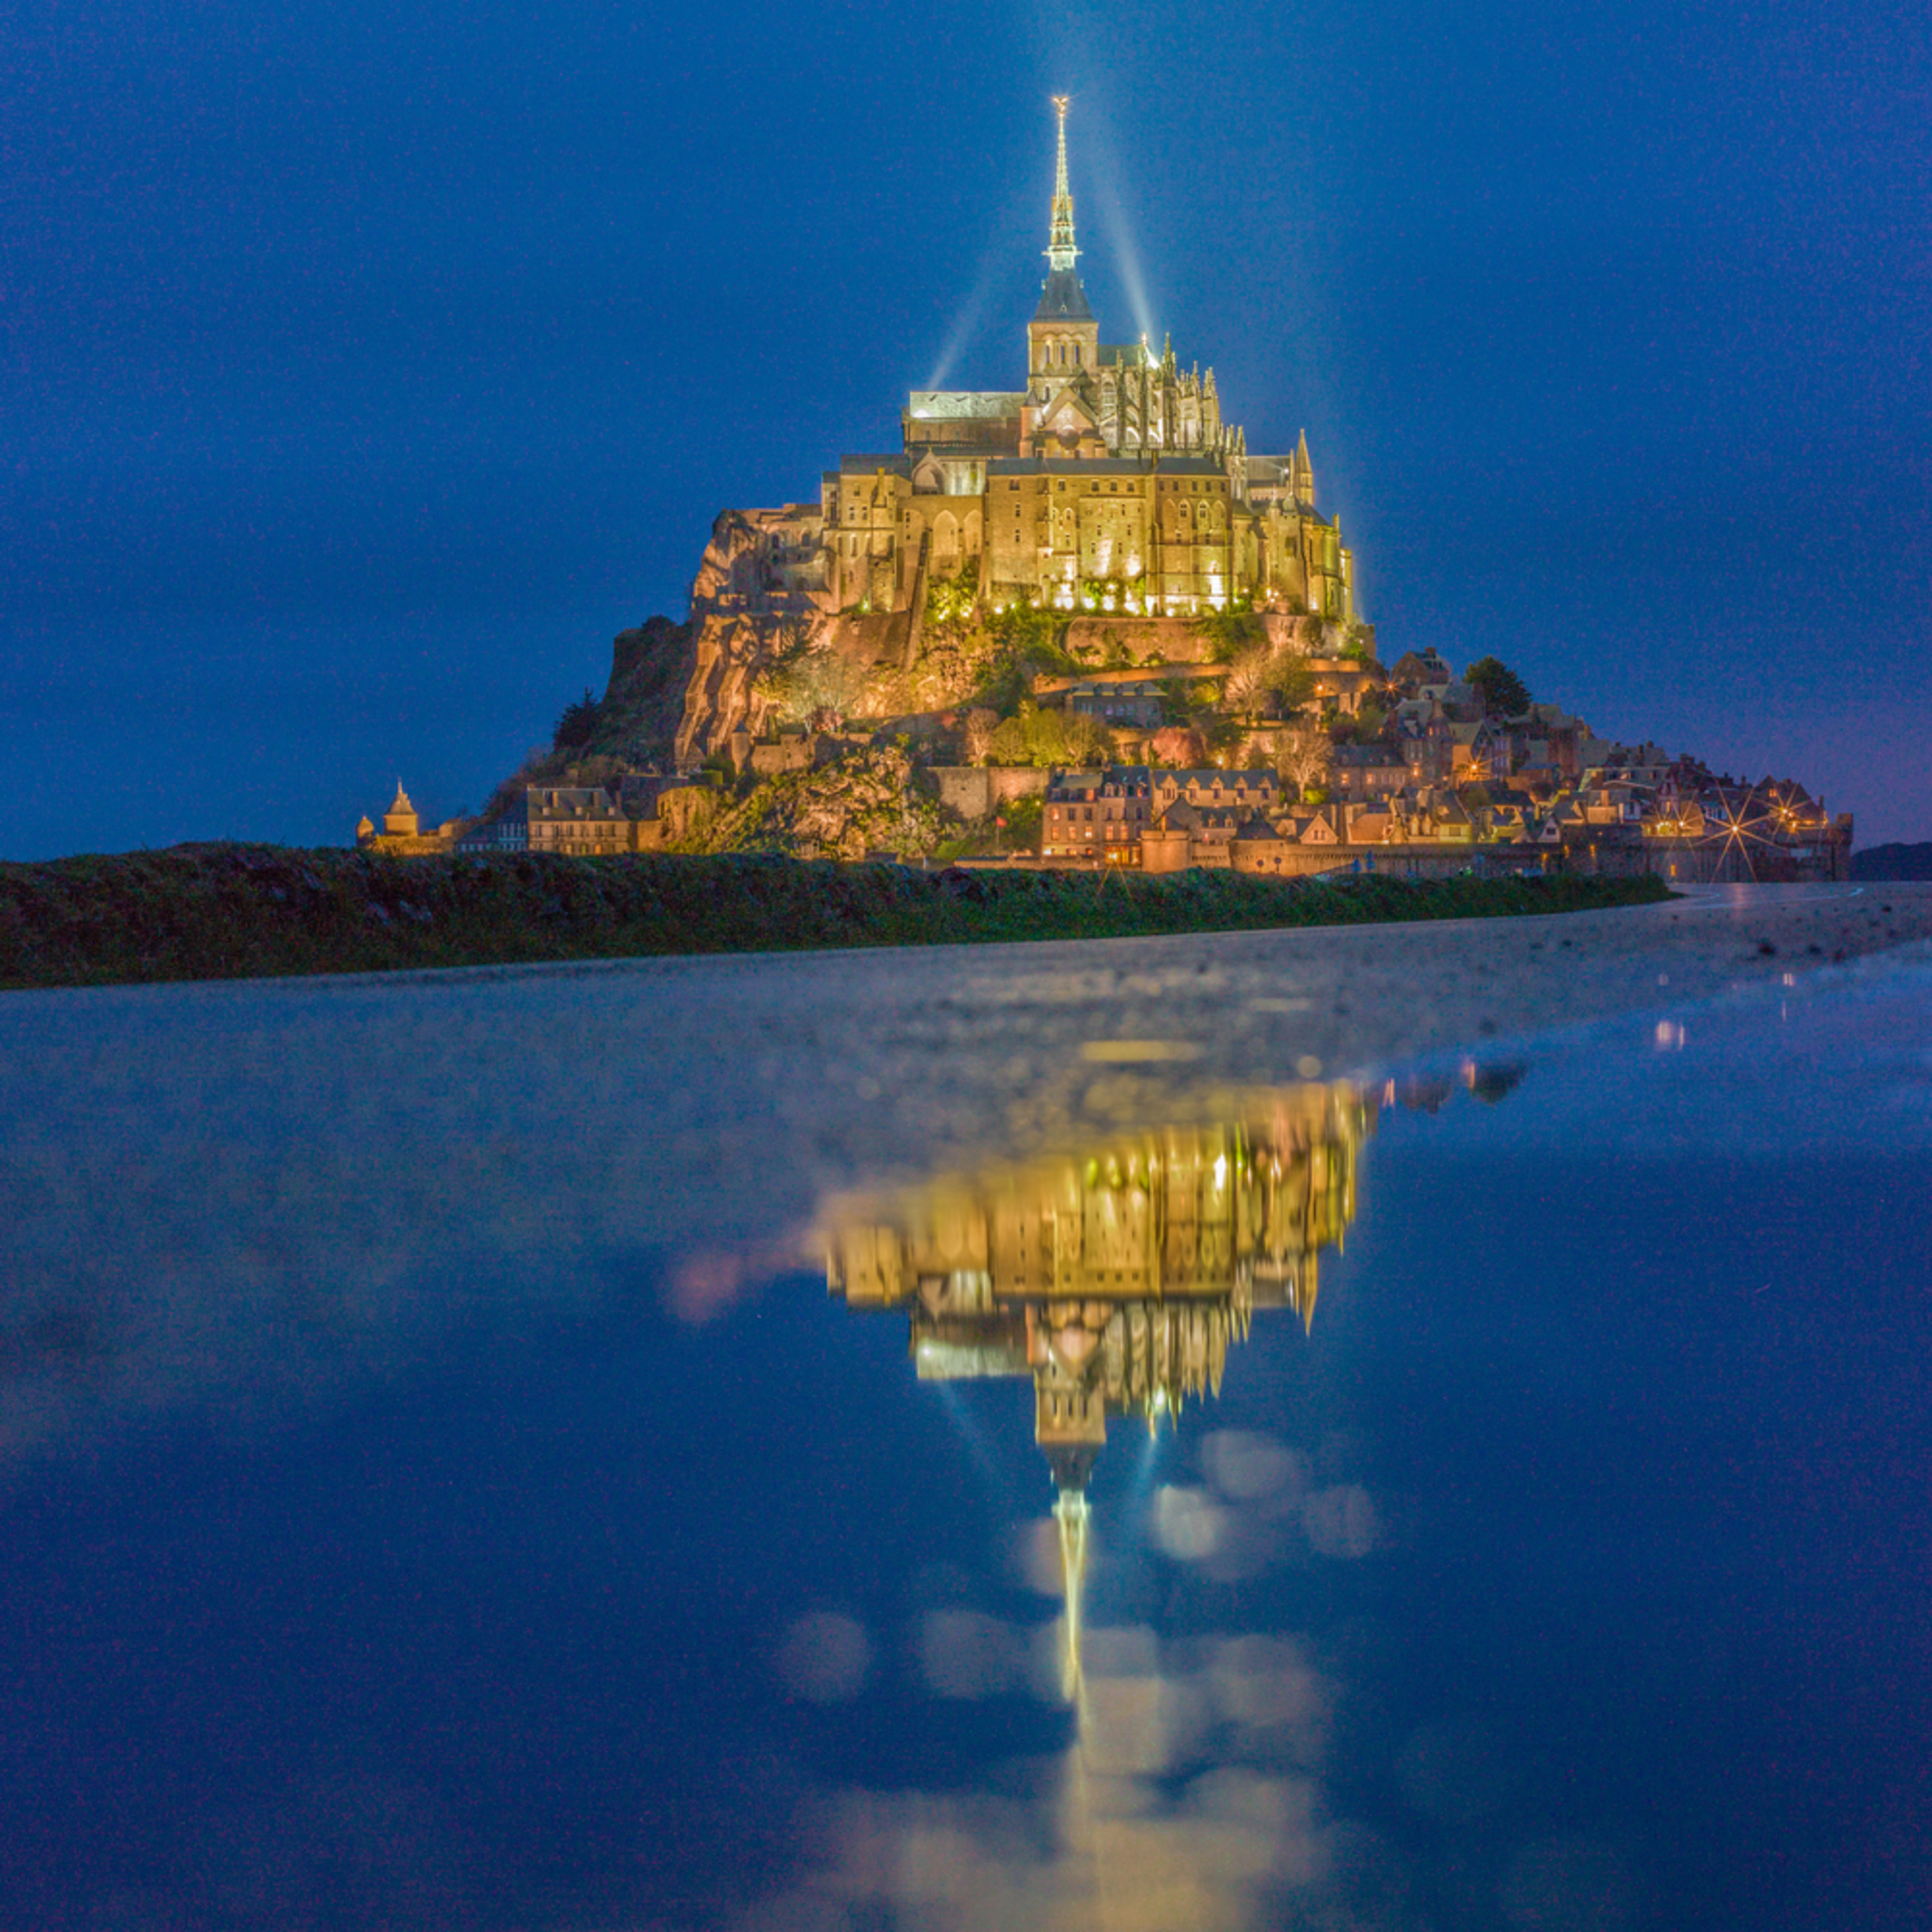 Mont saint michel hst6 66 of 79 k2w8ta